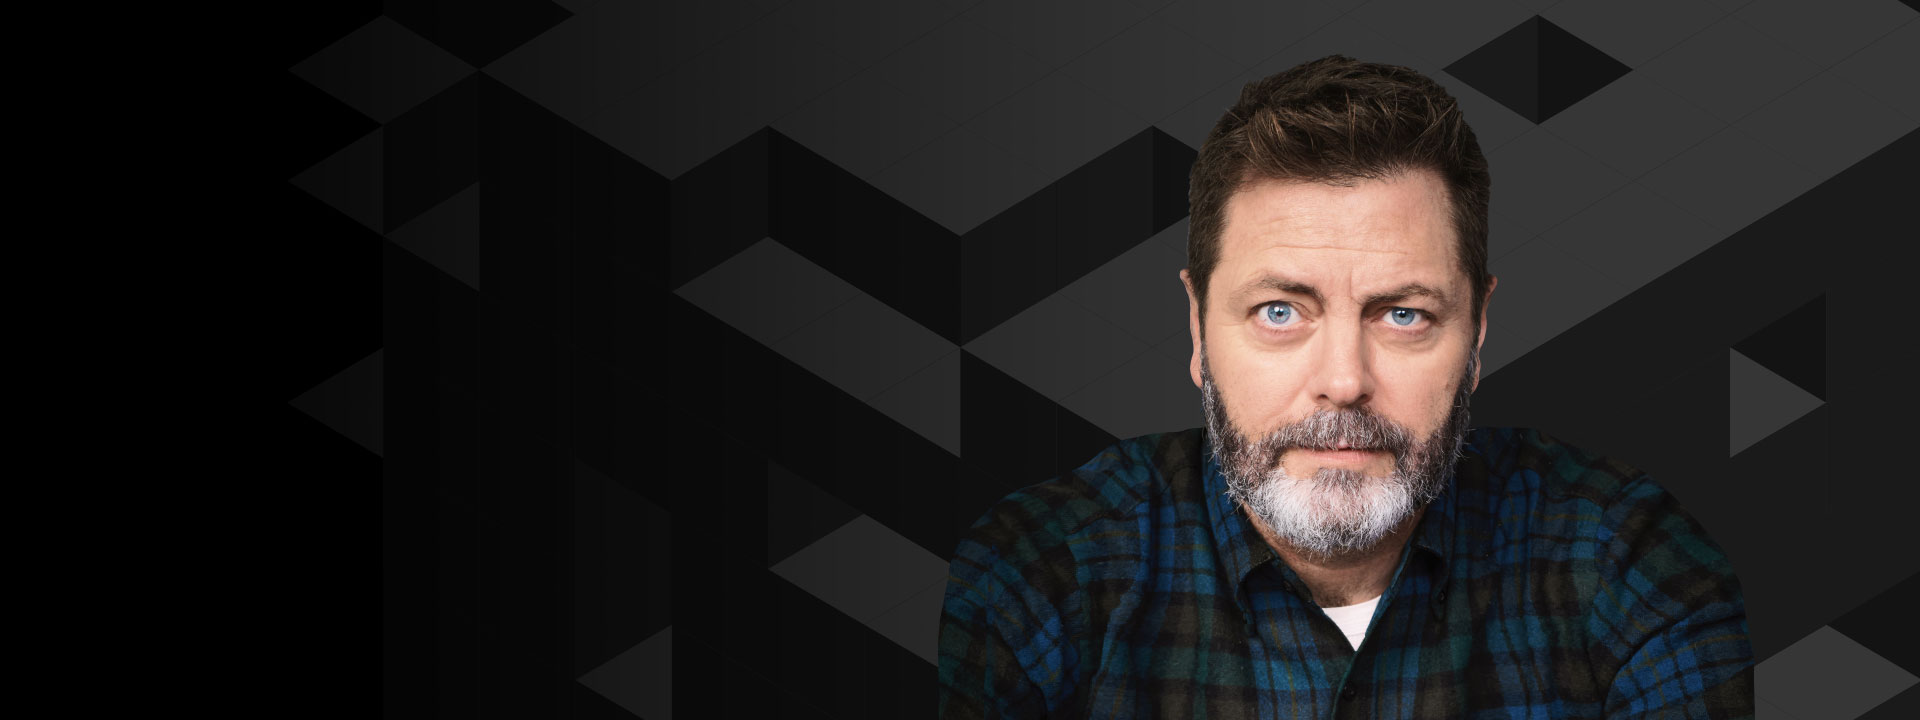 Nick Offerman as keynote speaker for Groundbreak